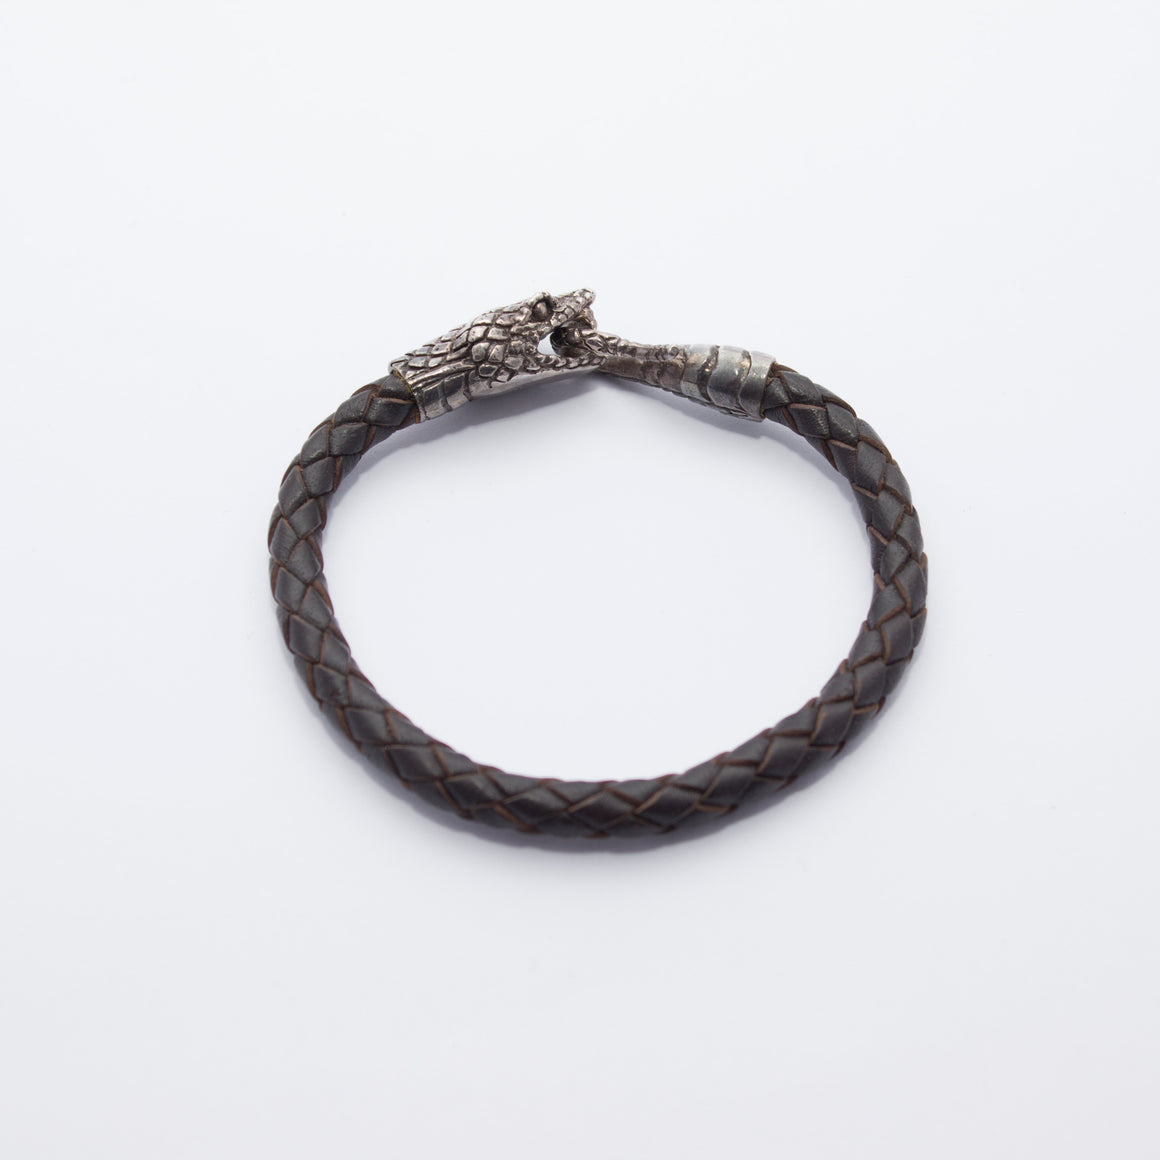 STERLING SILVER SNAKE HEAD BRACELET ON DARK BROWN LEATHER